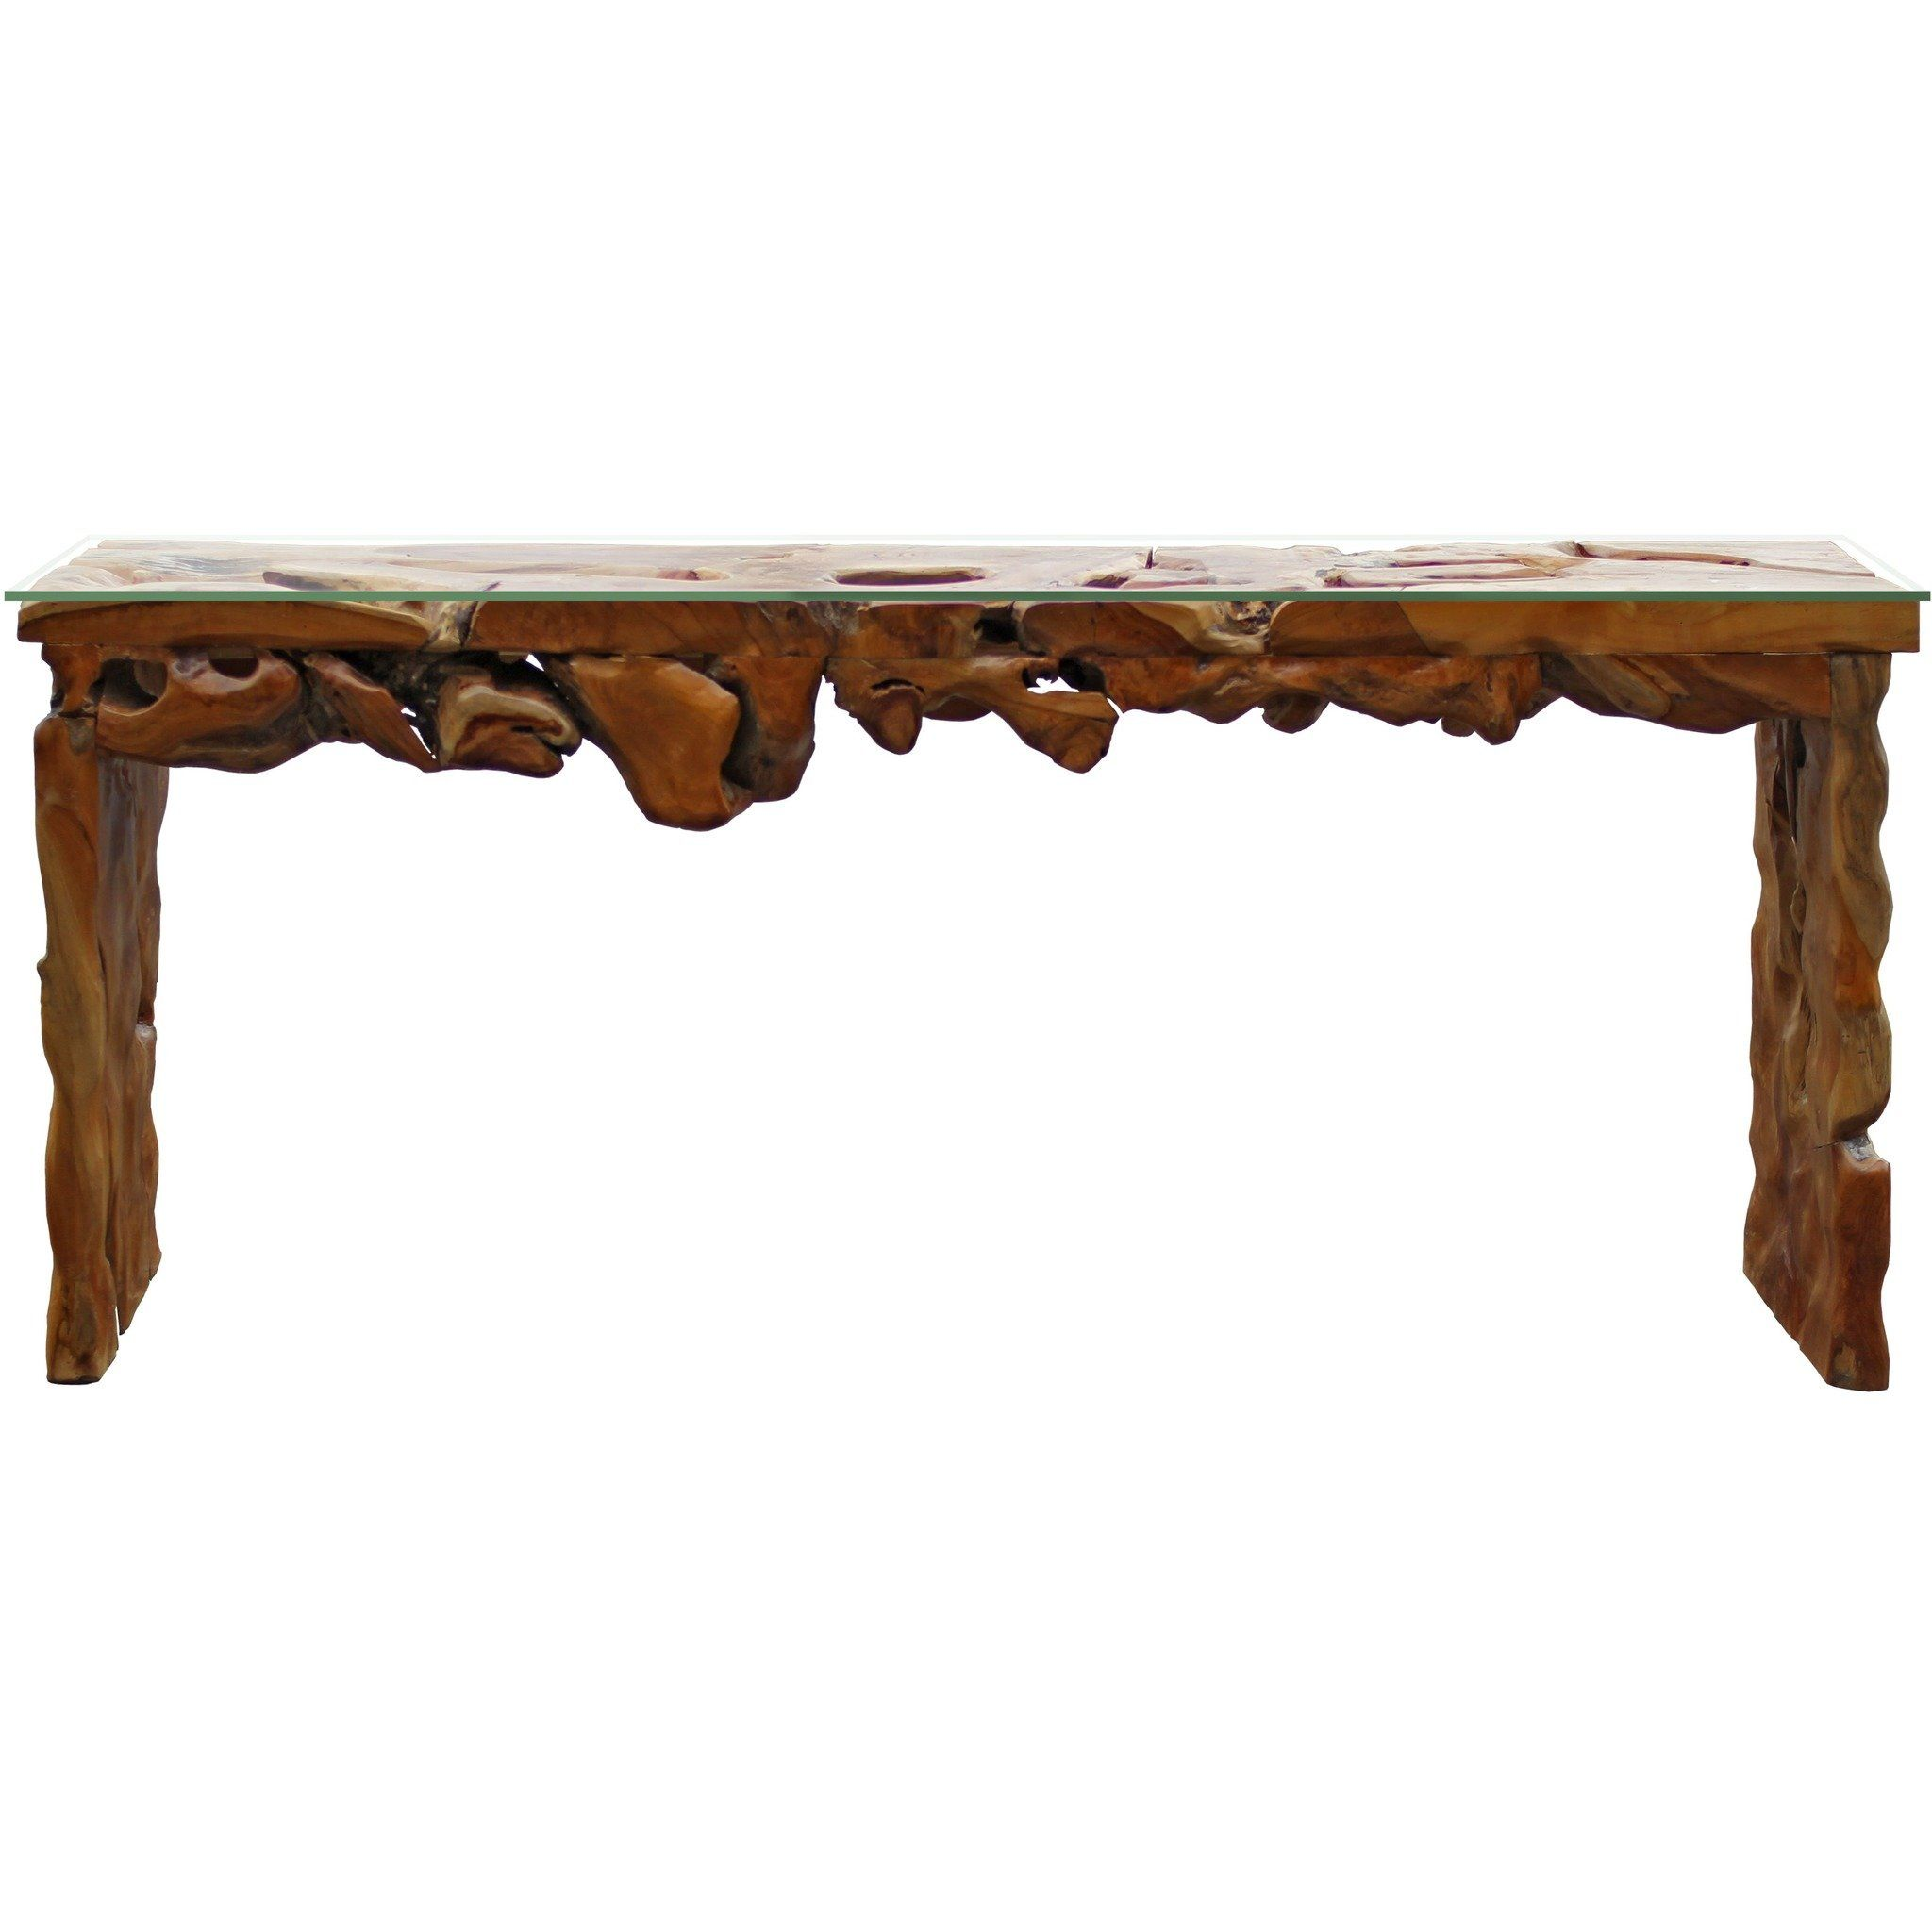 Teak Wood Root Console Table With Glass Top 72 Inches By Chic